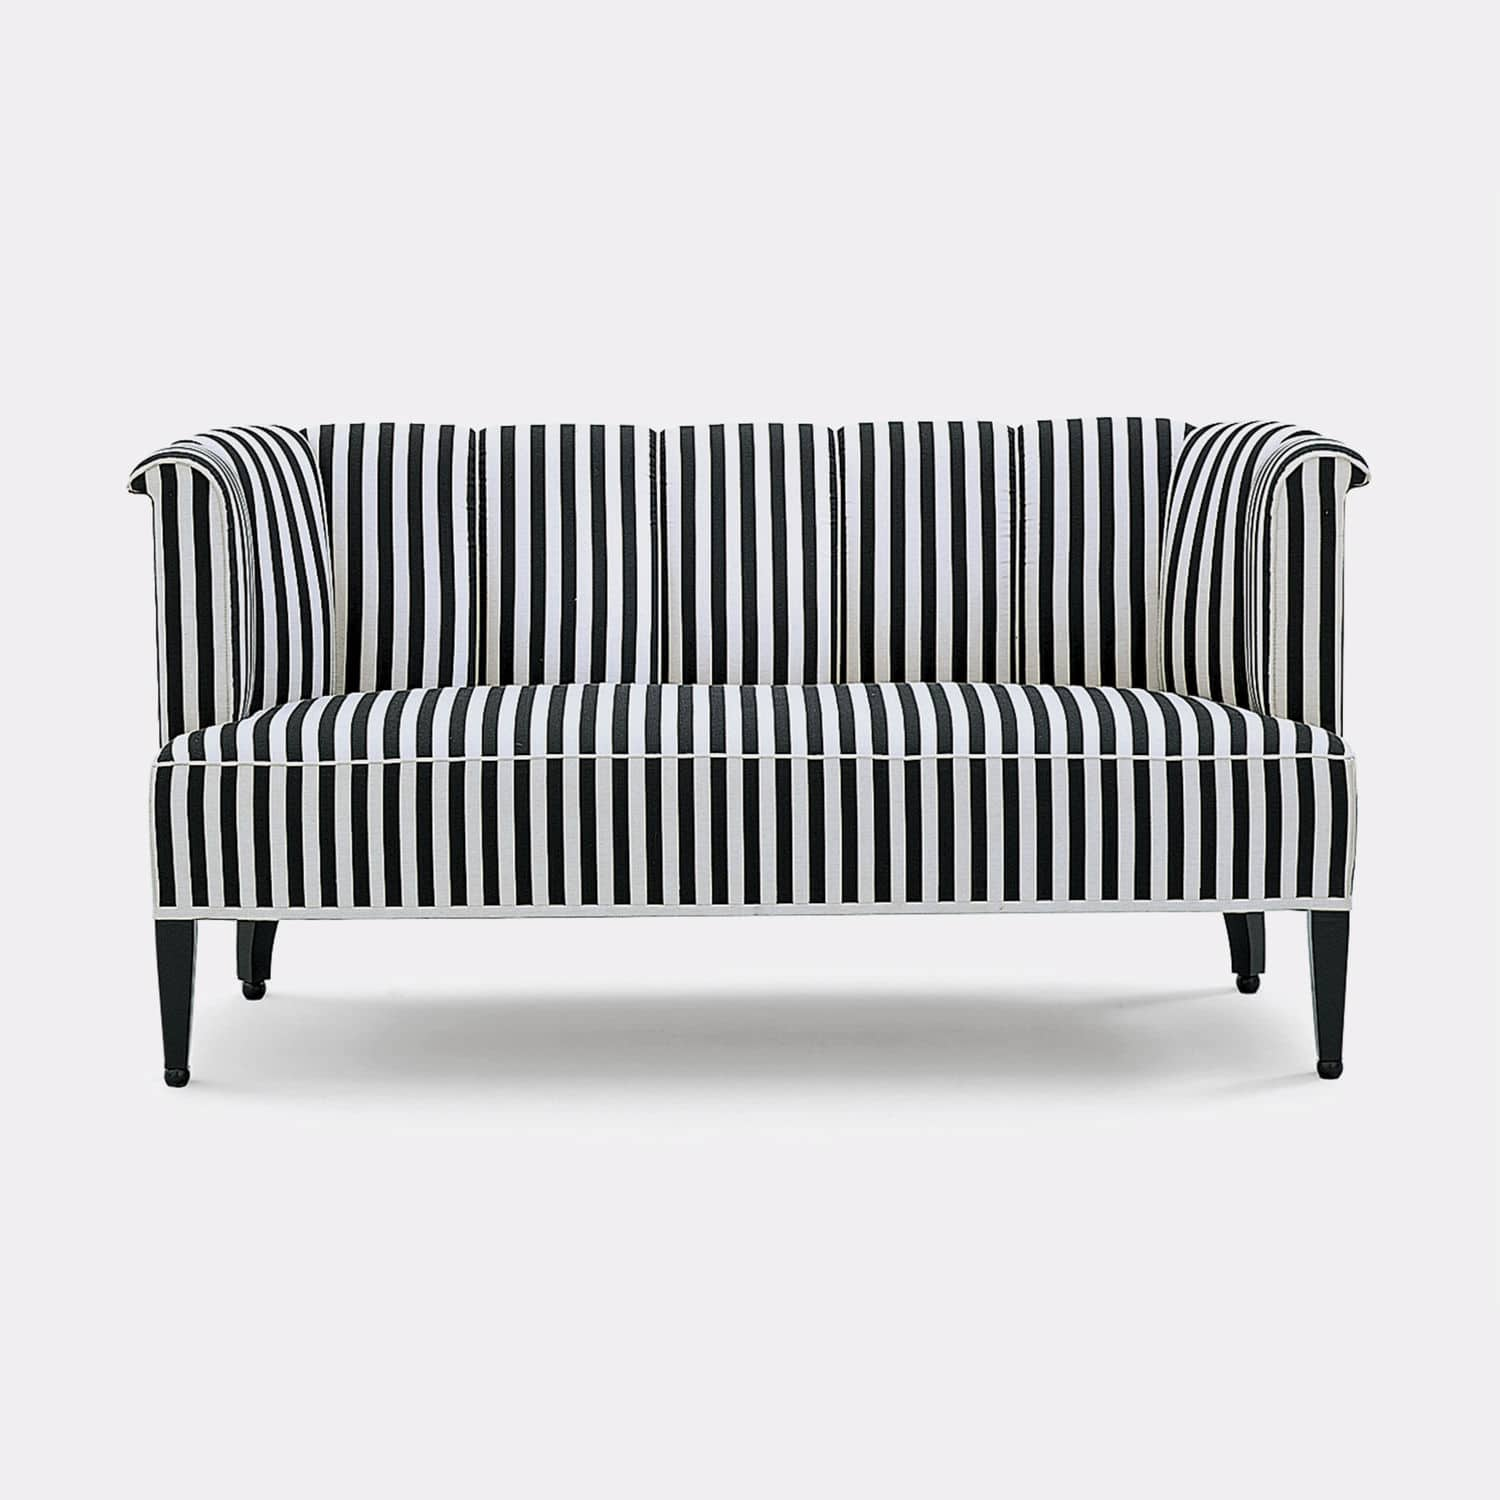 Traditional Sofa Fabric 3 Seater Multi Color Alleege By Josef Hoffmann